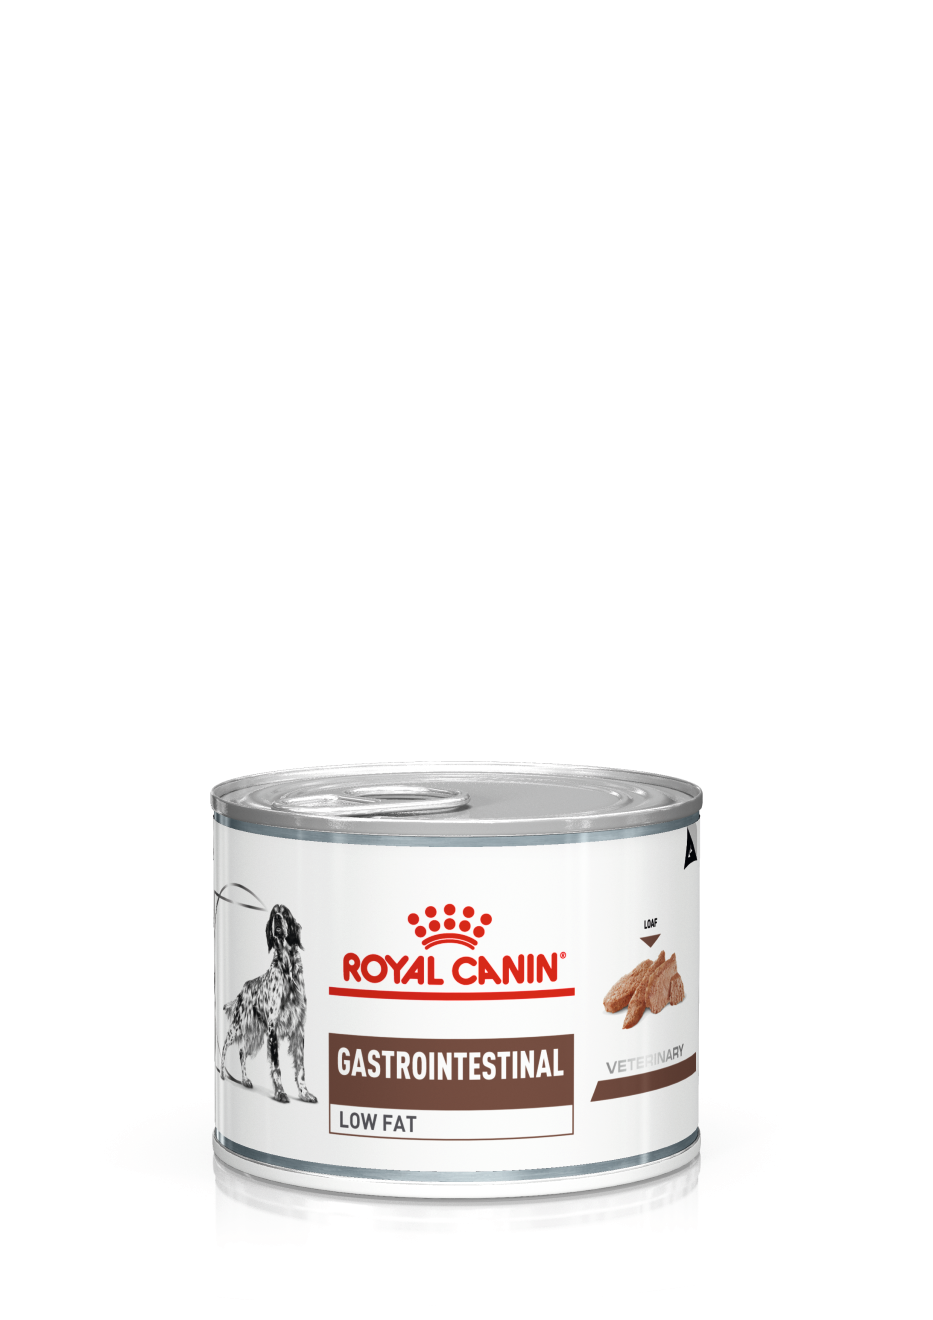 Royal Canin Gastrointestinal Low Fat Mousse 1 Dose je 200g